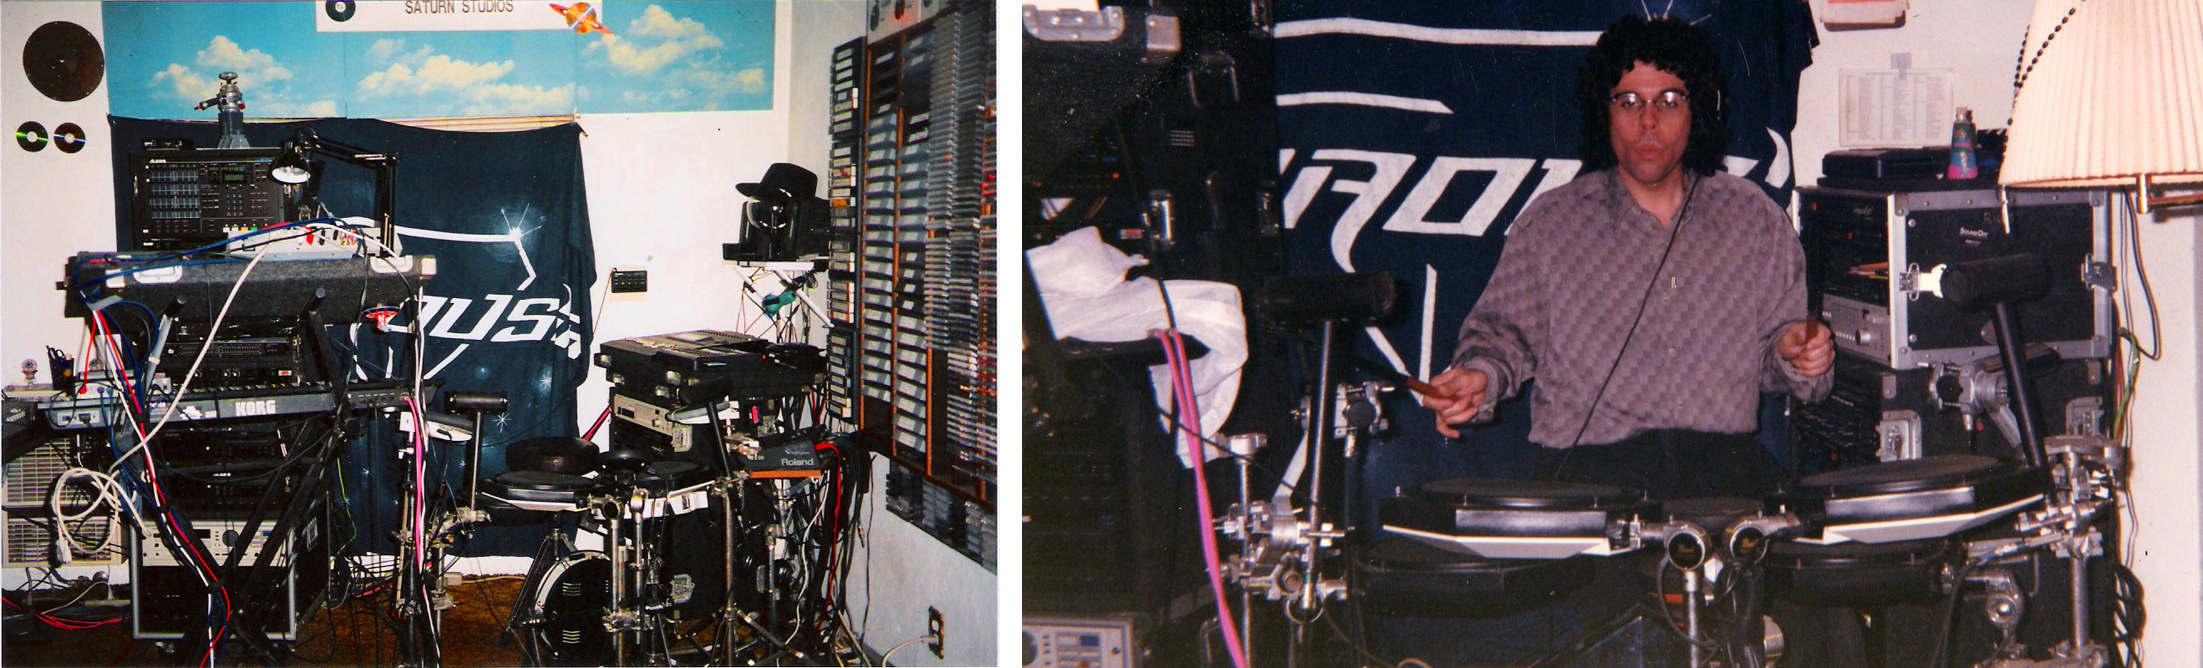 Gerry Cannizzaro's burgeoning Saturn Studios, 2001